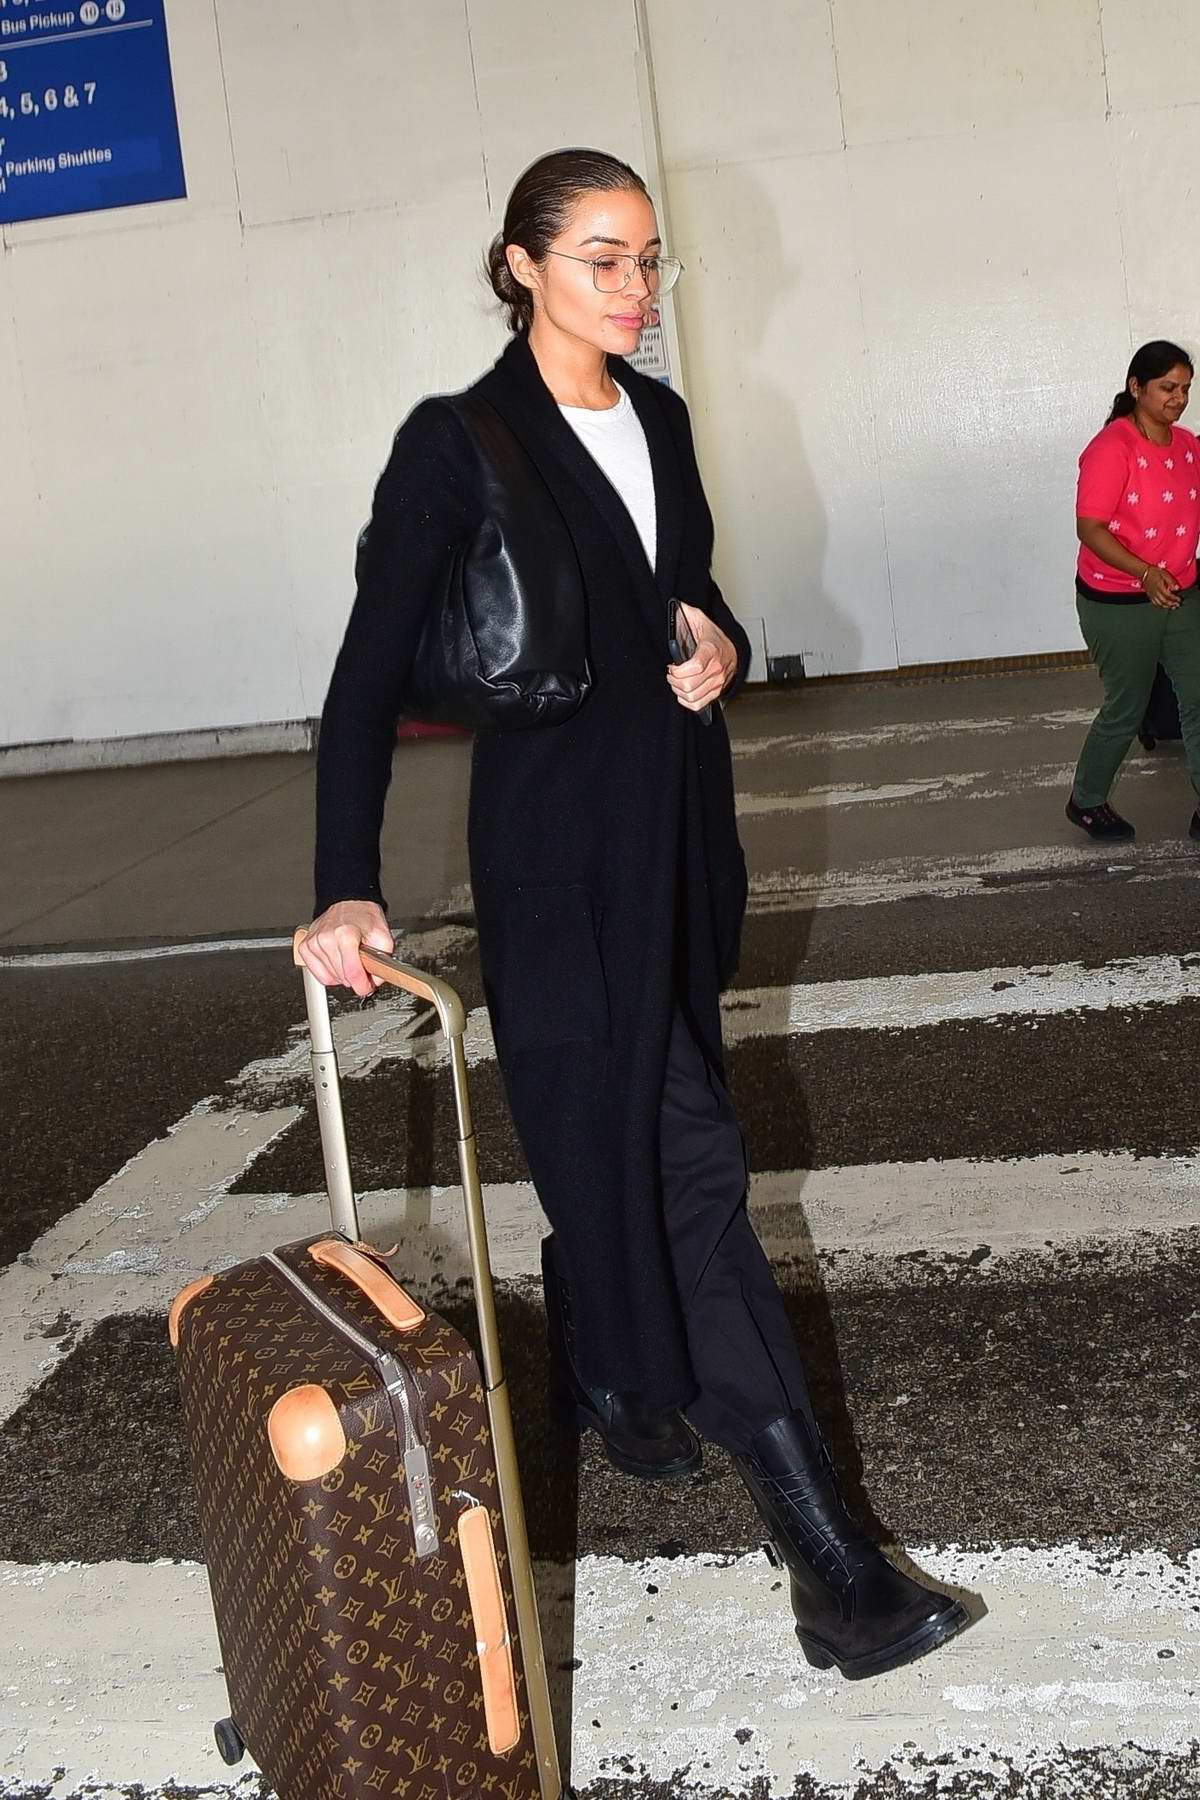 Olivia Culpo looks tired after a long flight from Milan to LAX airport in Los Angeles